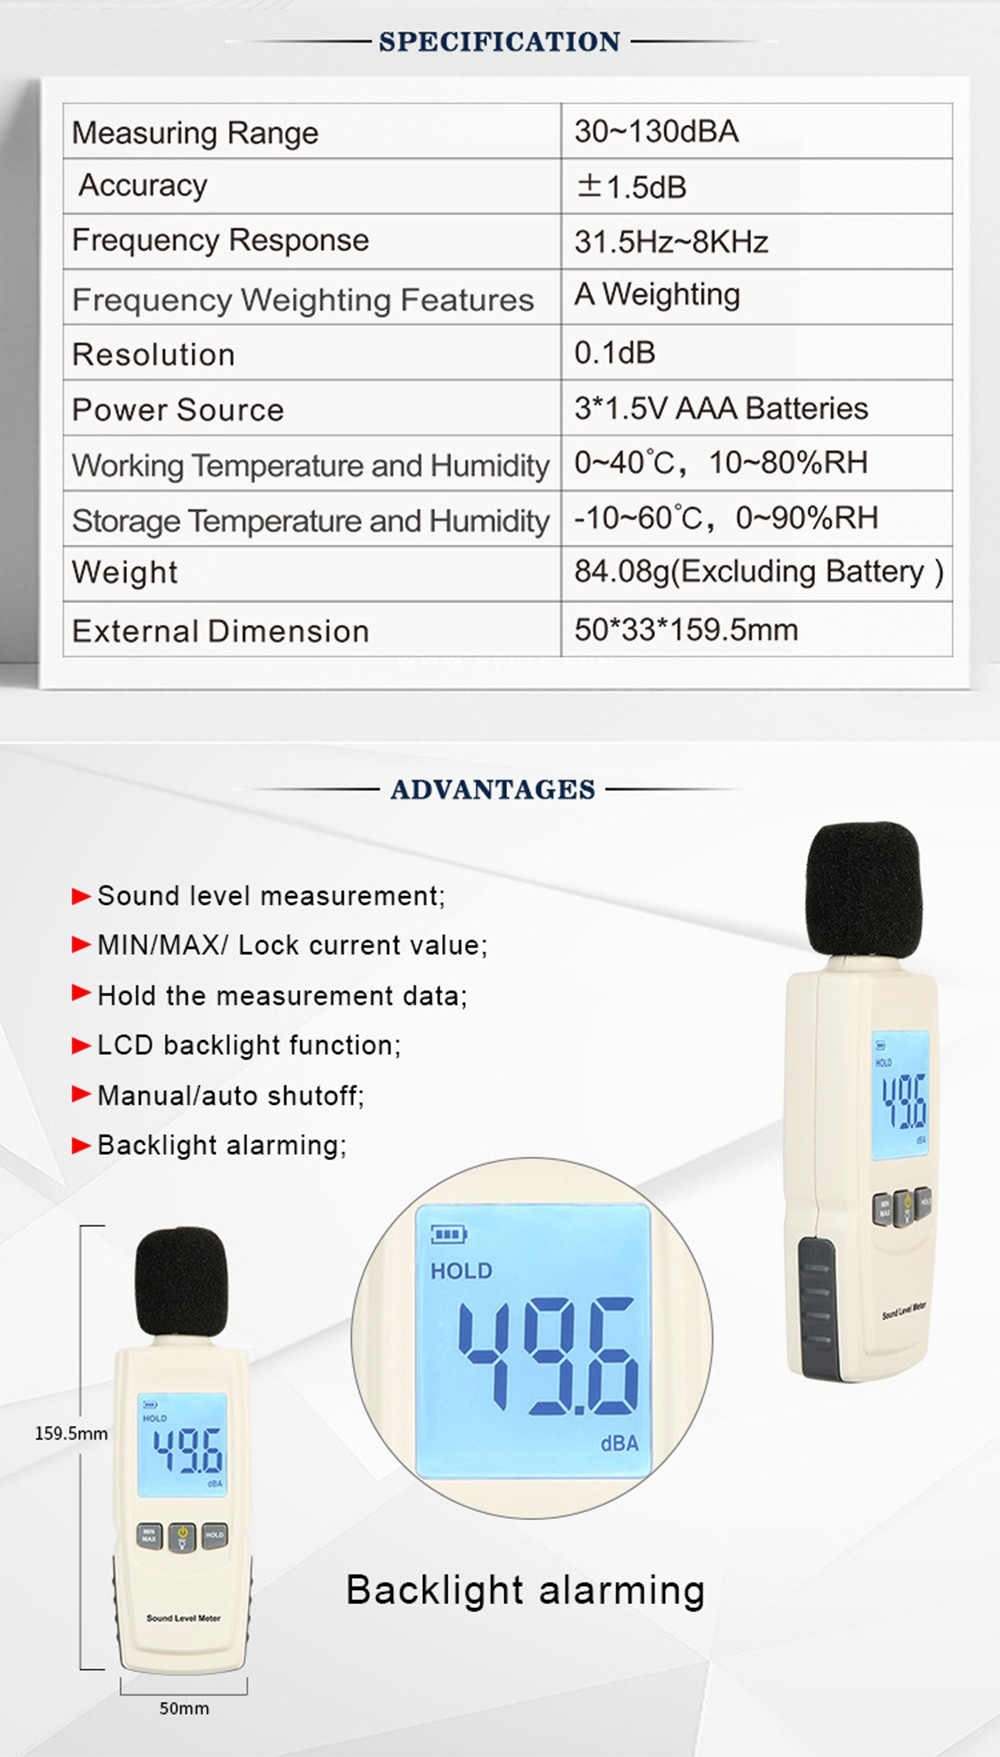 GM1352 Digital Noise Decibel Meter for Office and Home - White Specifications